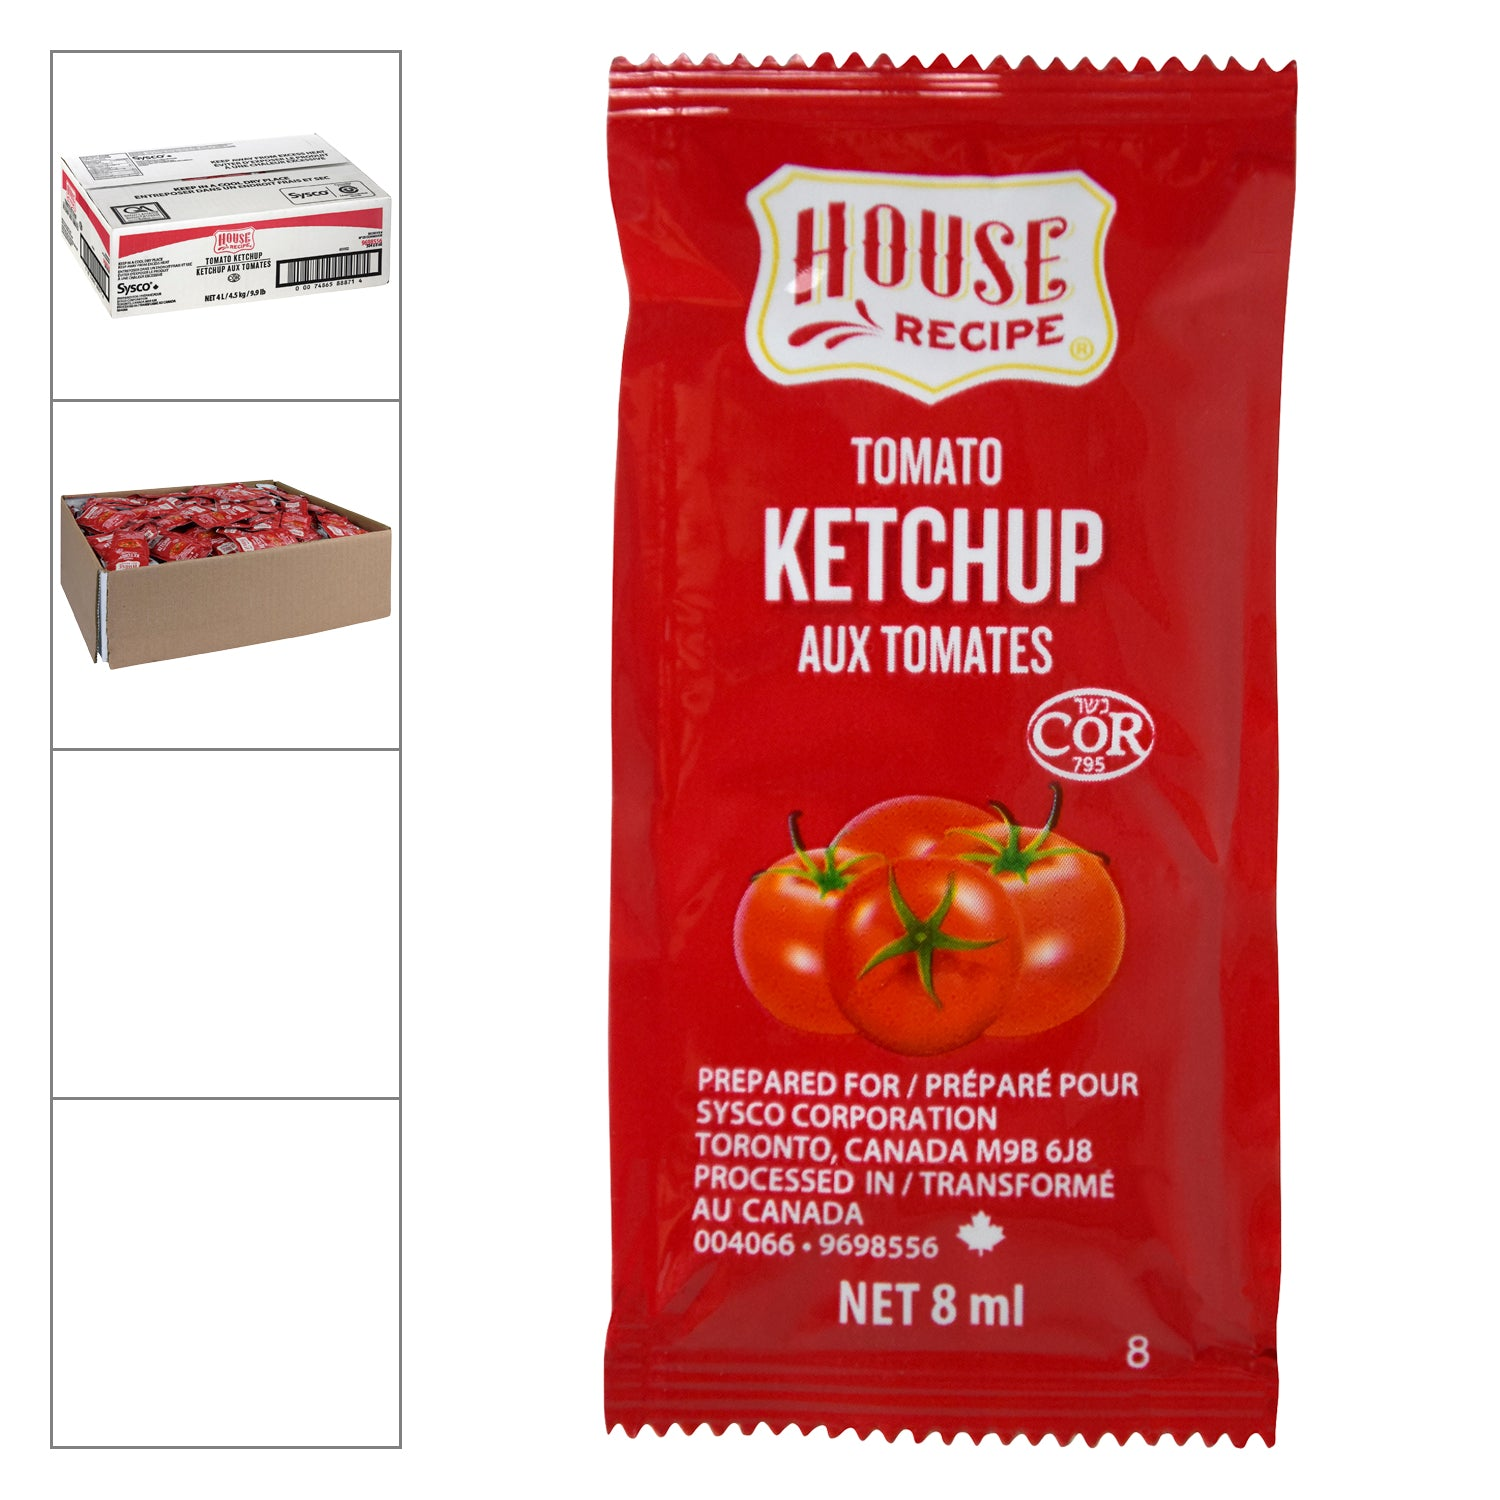 Sysco House Recipe Ketchup Packet 8 ml - 504 Pack [$0.04/each]